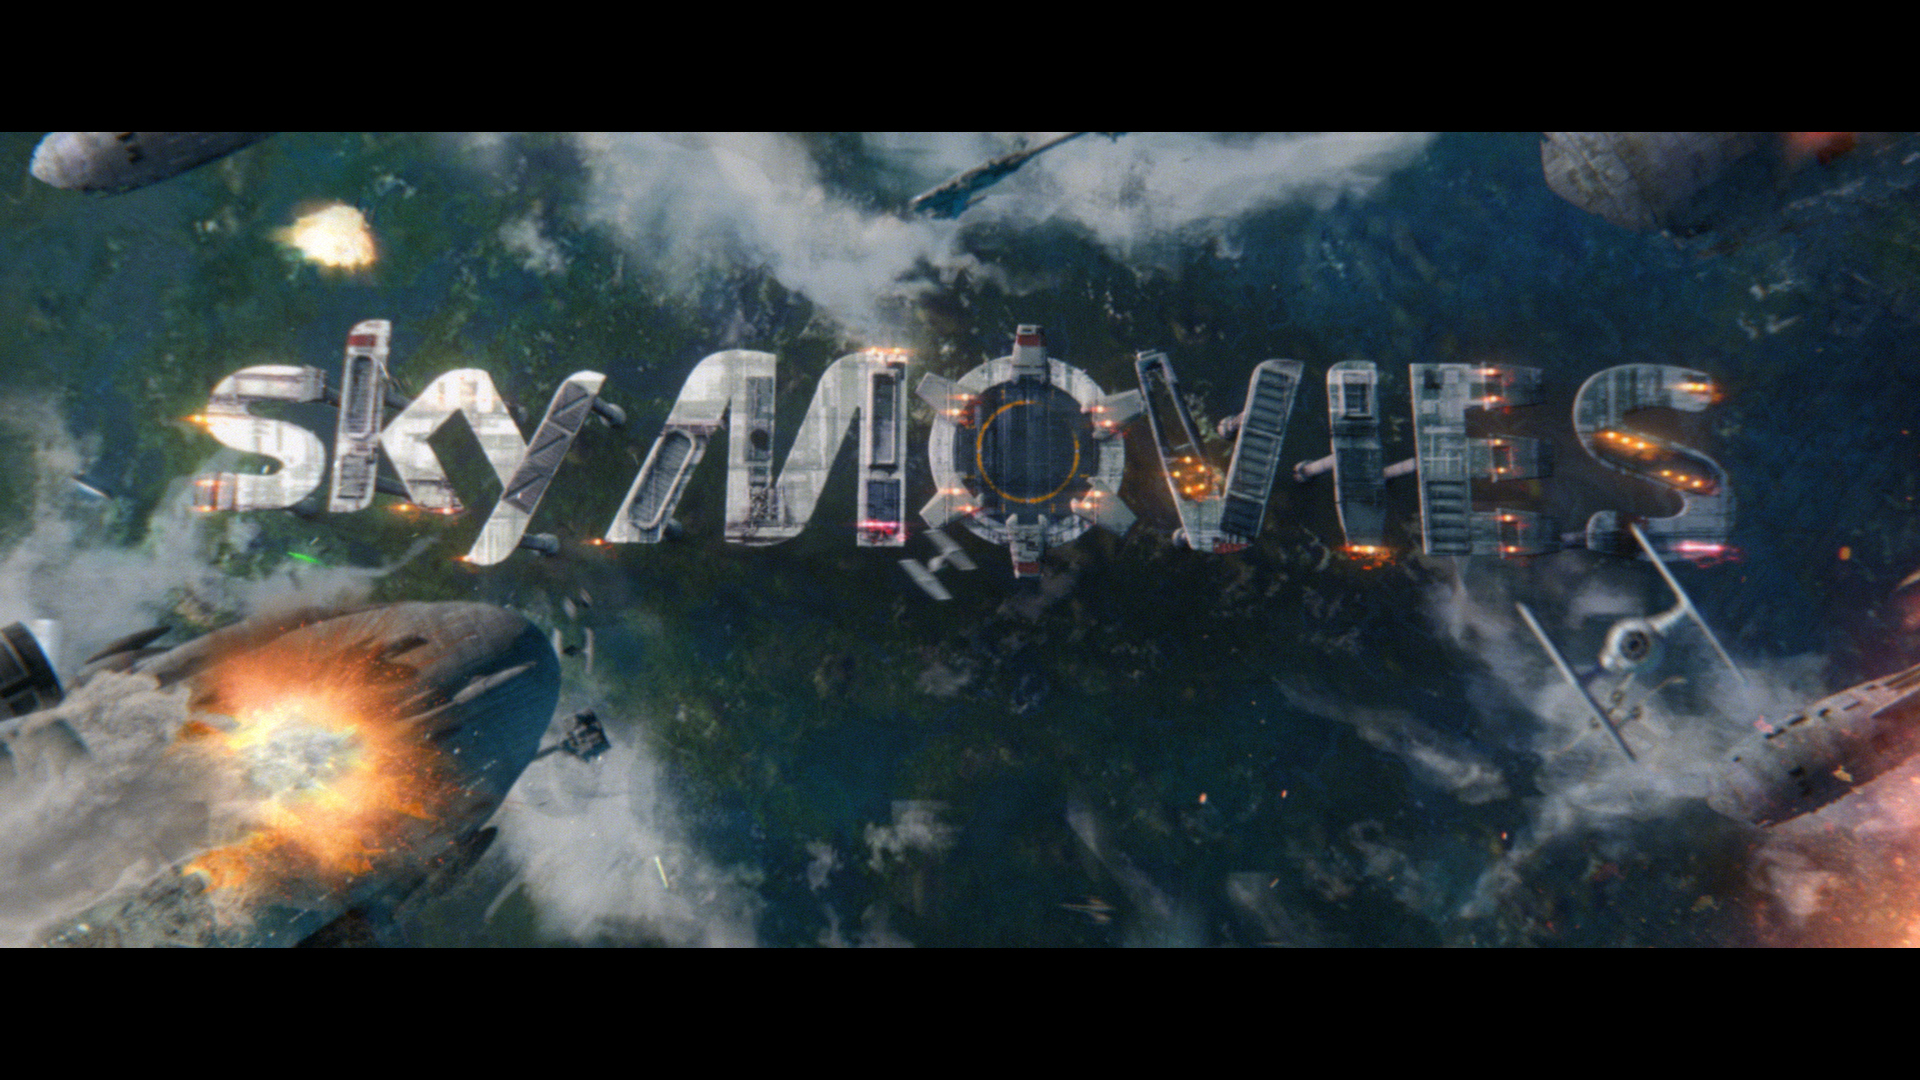 SkyMovies – Download HD quality movies for free